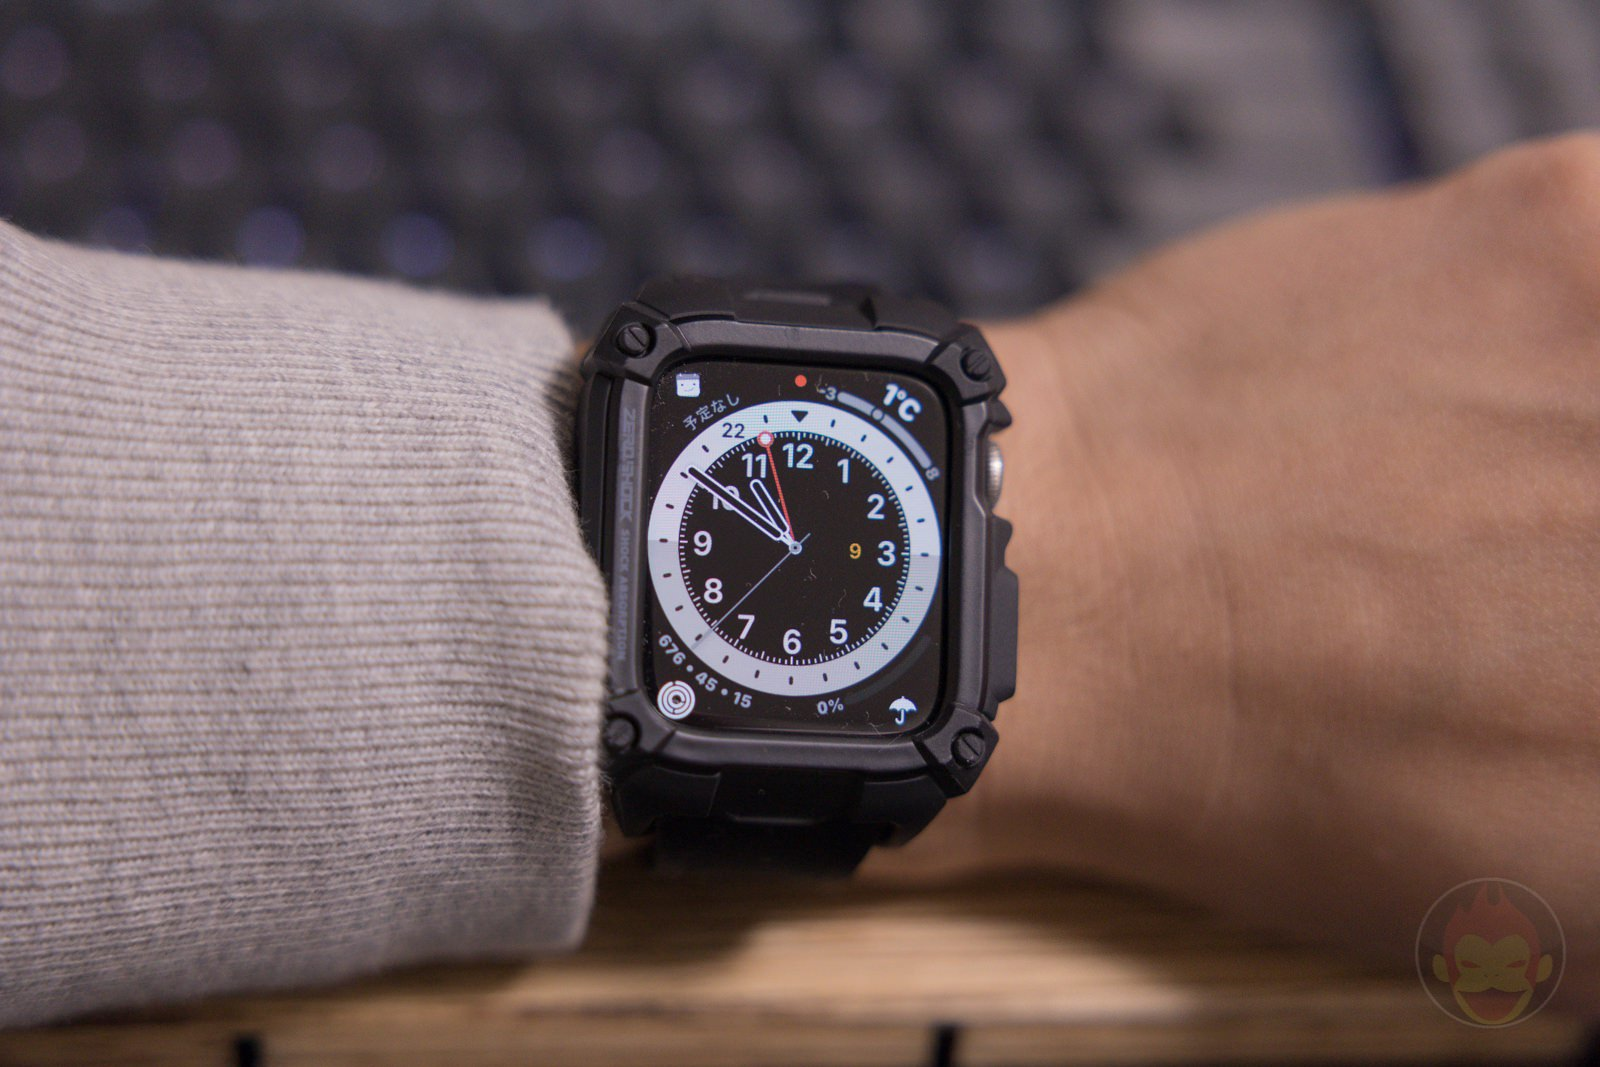 Apple Watch G SHOCK Elecom Case and UAG Band Review 02